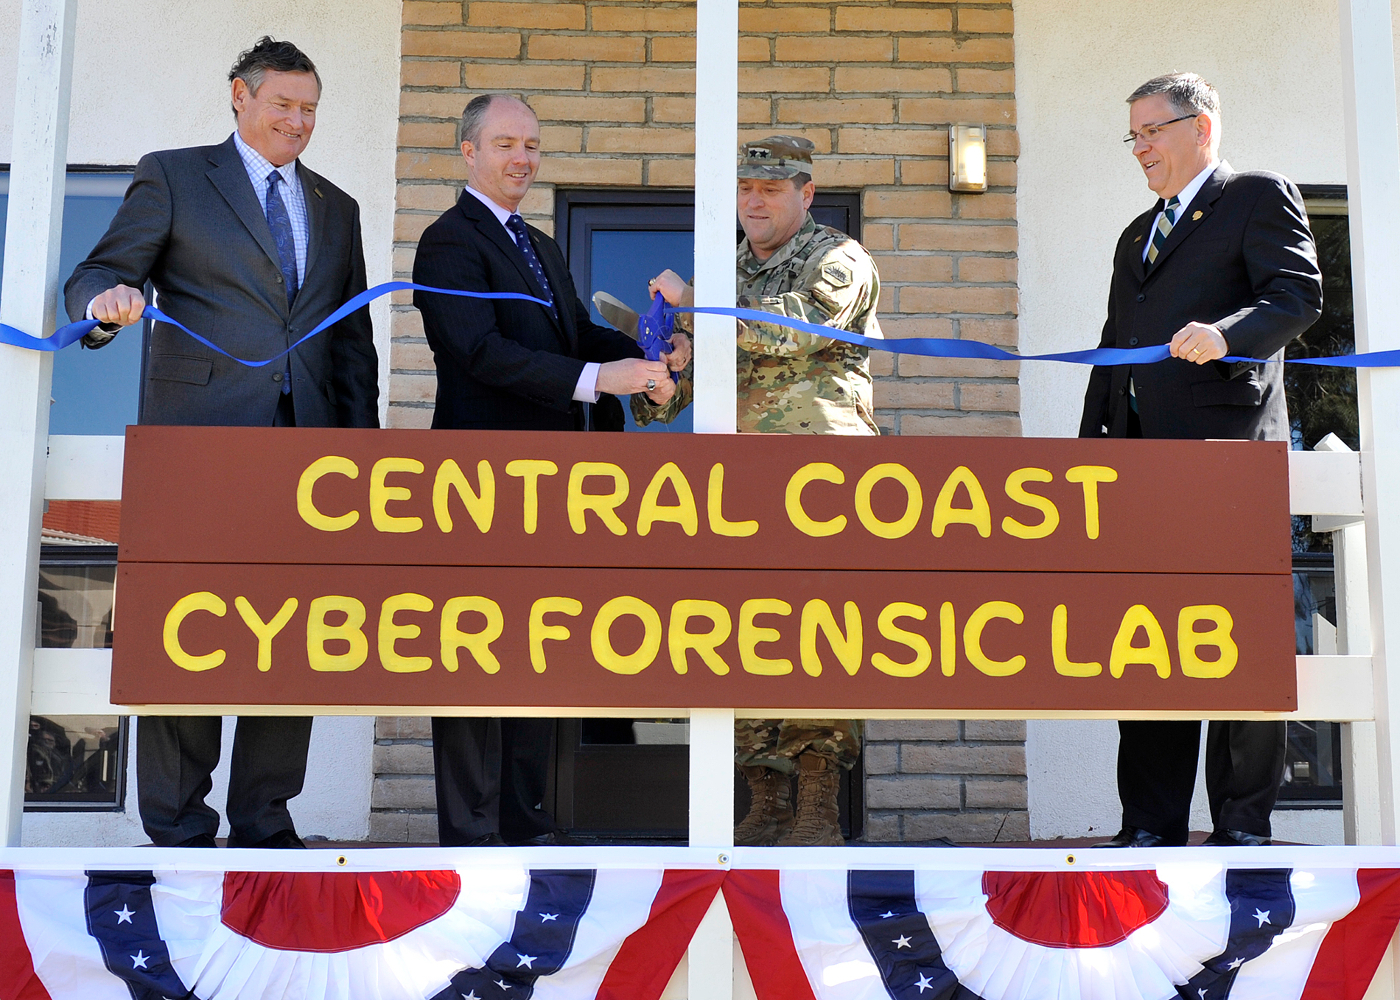 Central Coast Cyber Forensic Lab (CCCFL)